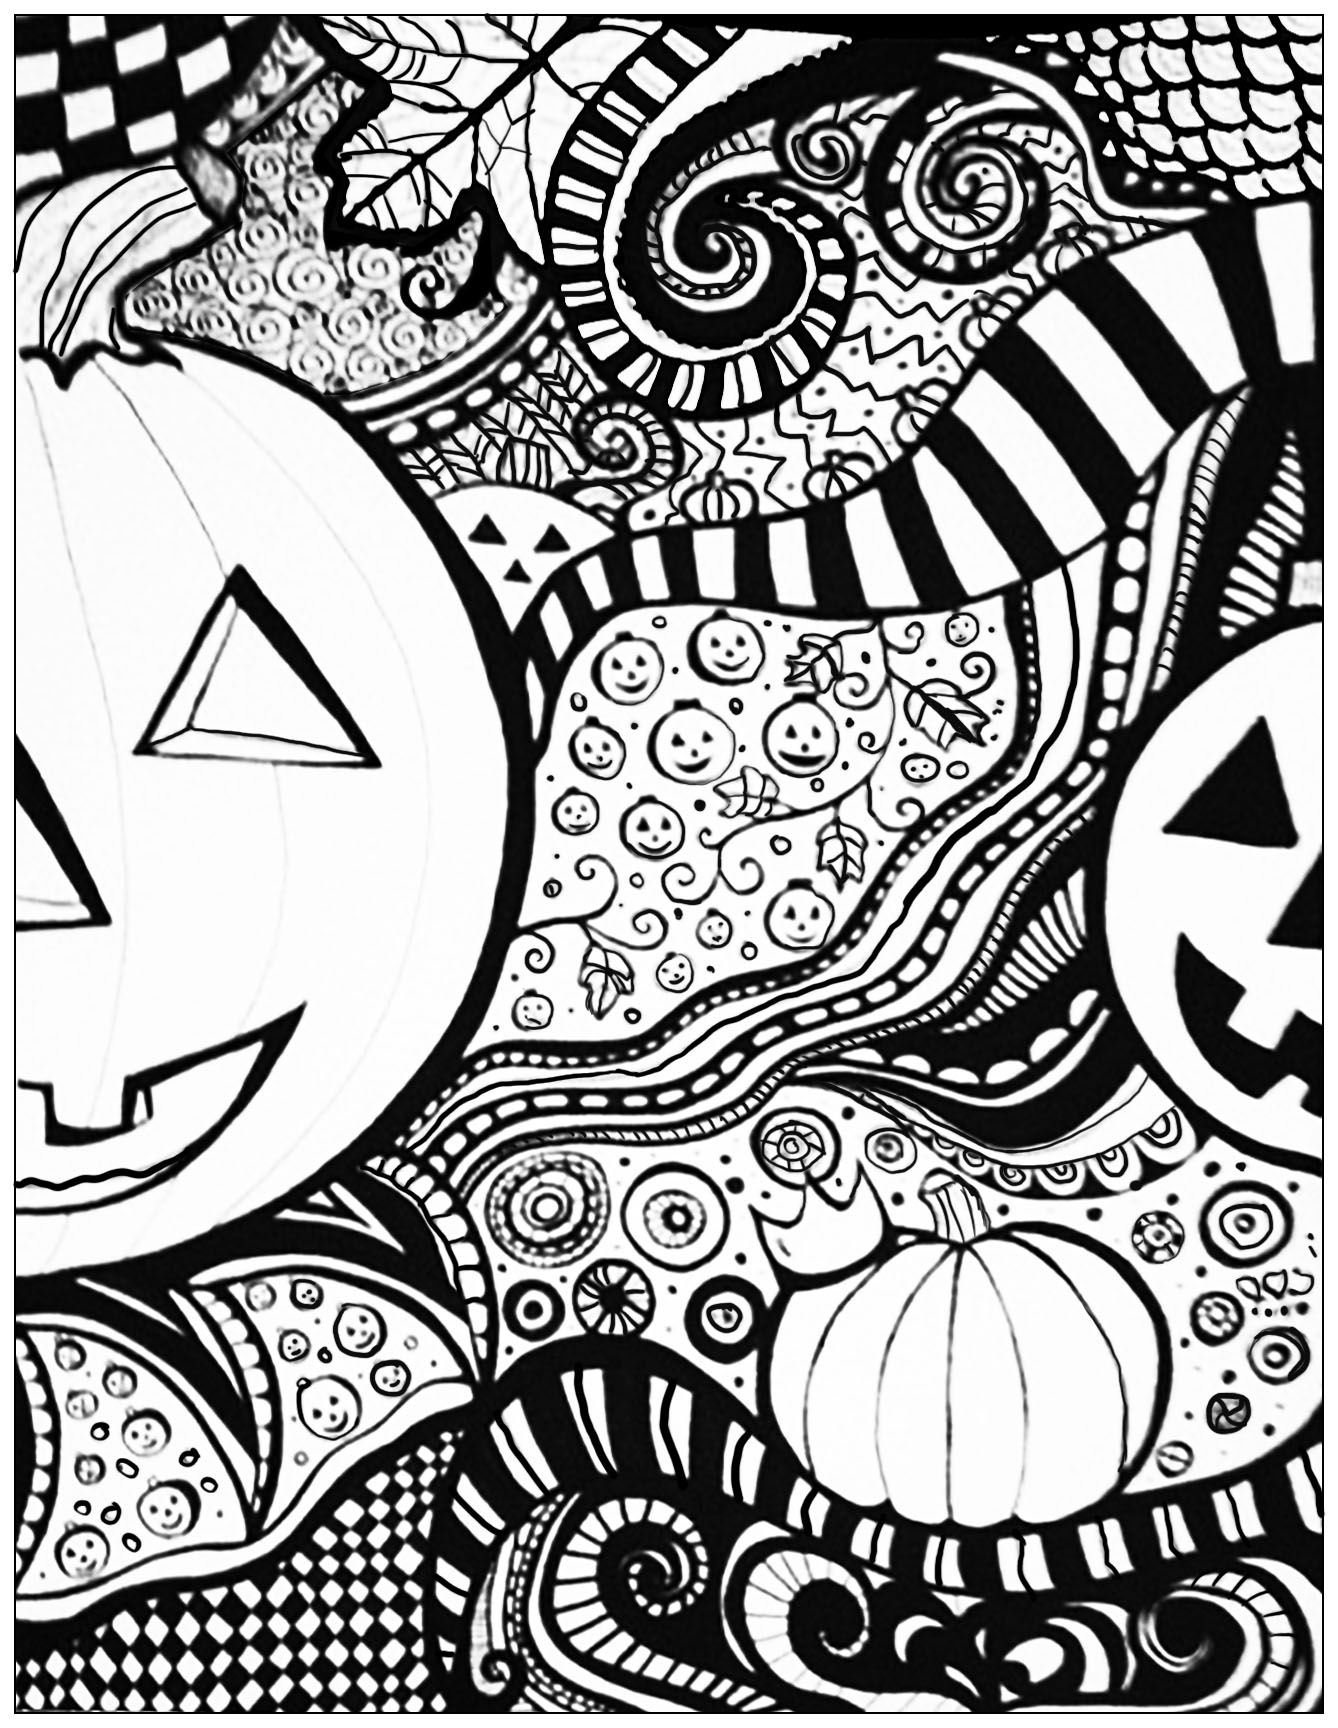 Coloring pictures for adults - Coloring Adult Halloween Coloring Sheet Free To Print